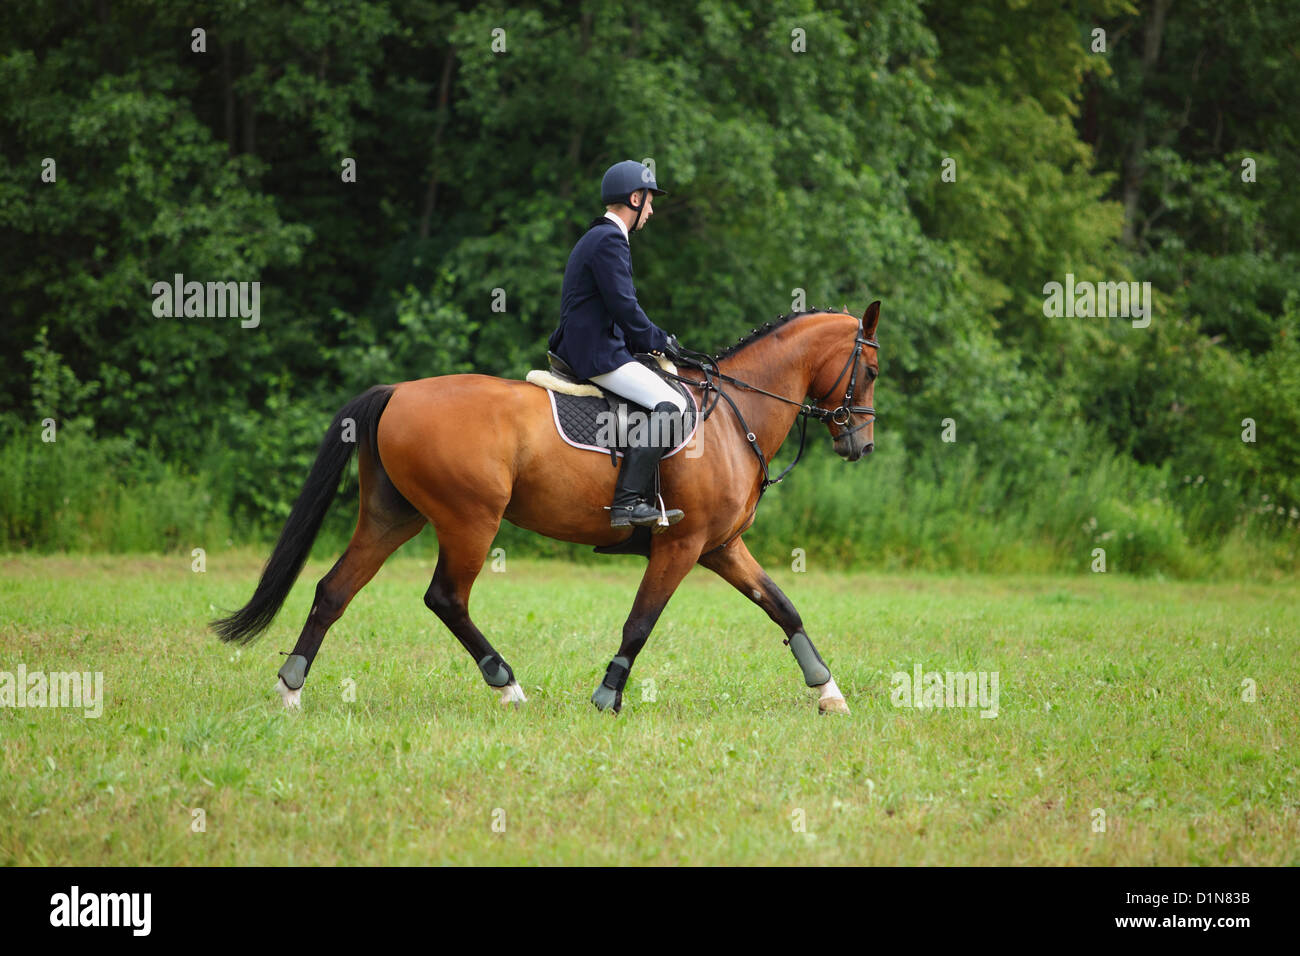 Horse and Rider in an English riding saddle entered in horse Dressage part - Stock Image